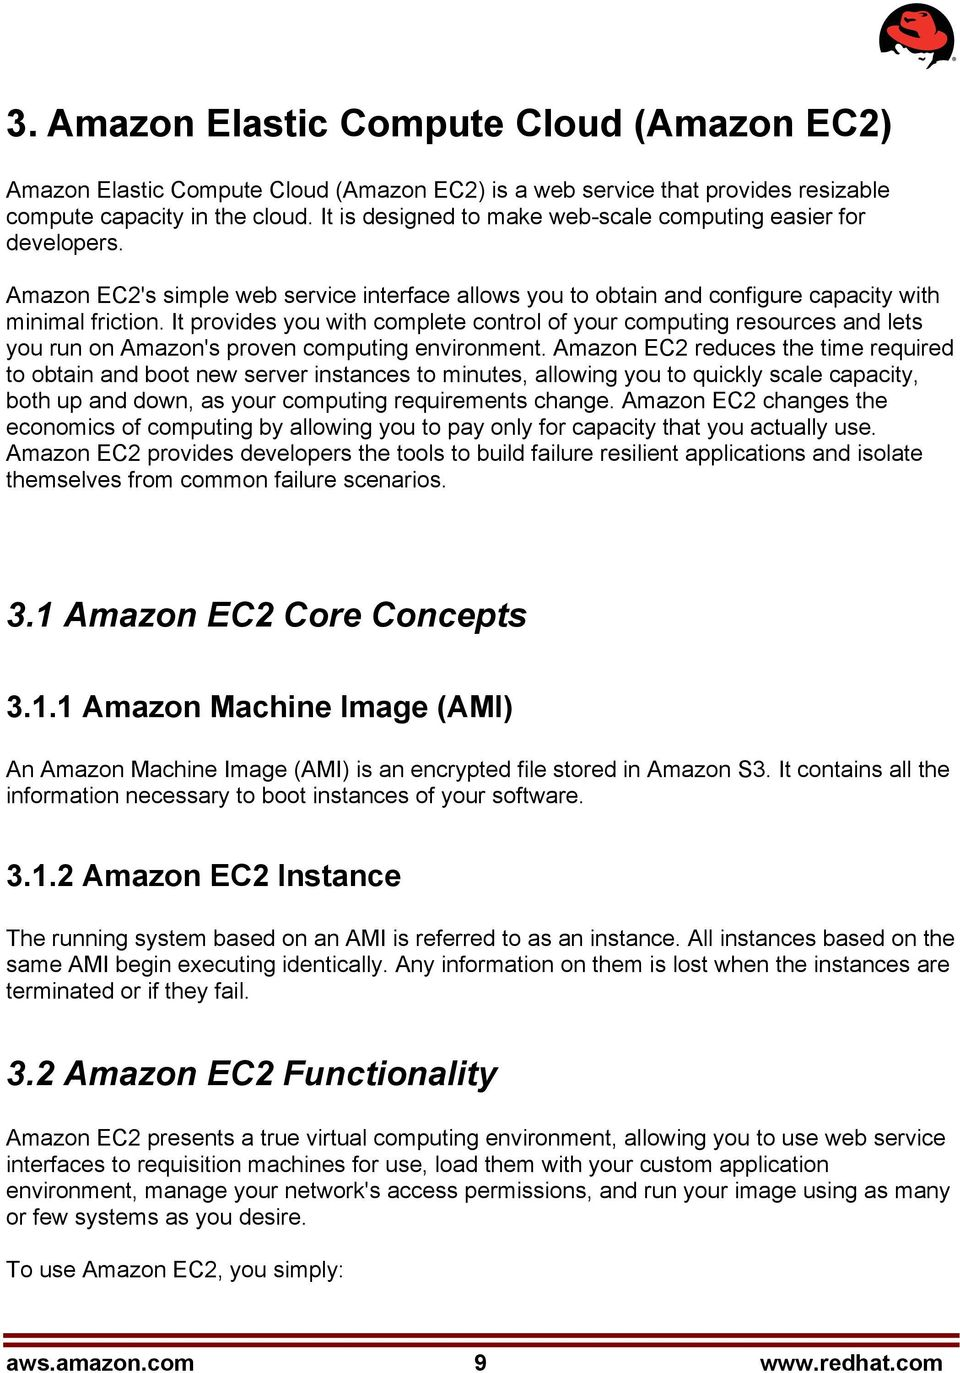 Getting Started with Cloud Computing: Amazon EC2 on Red Hat